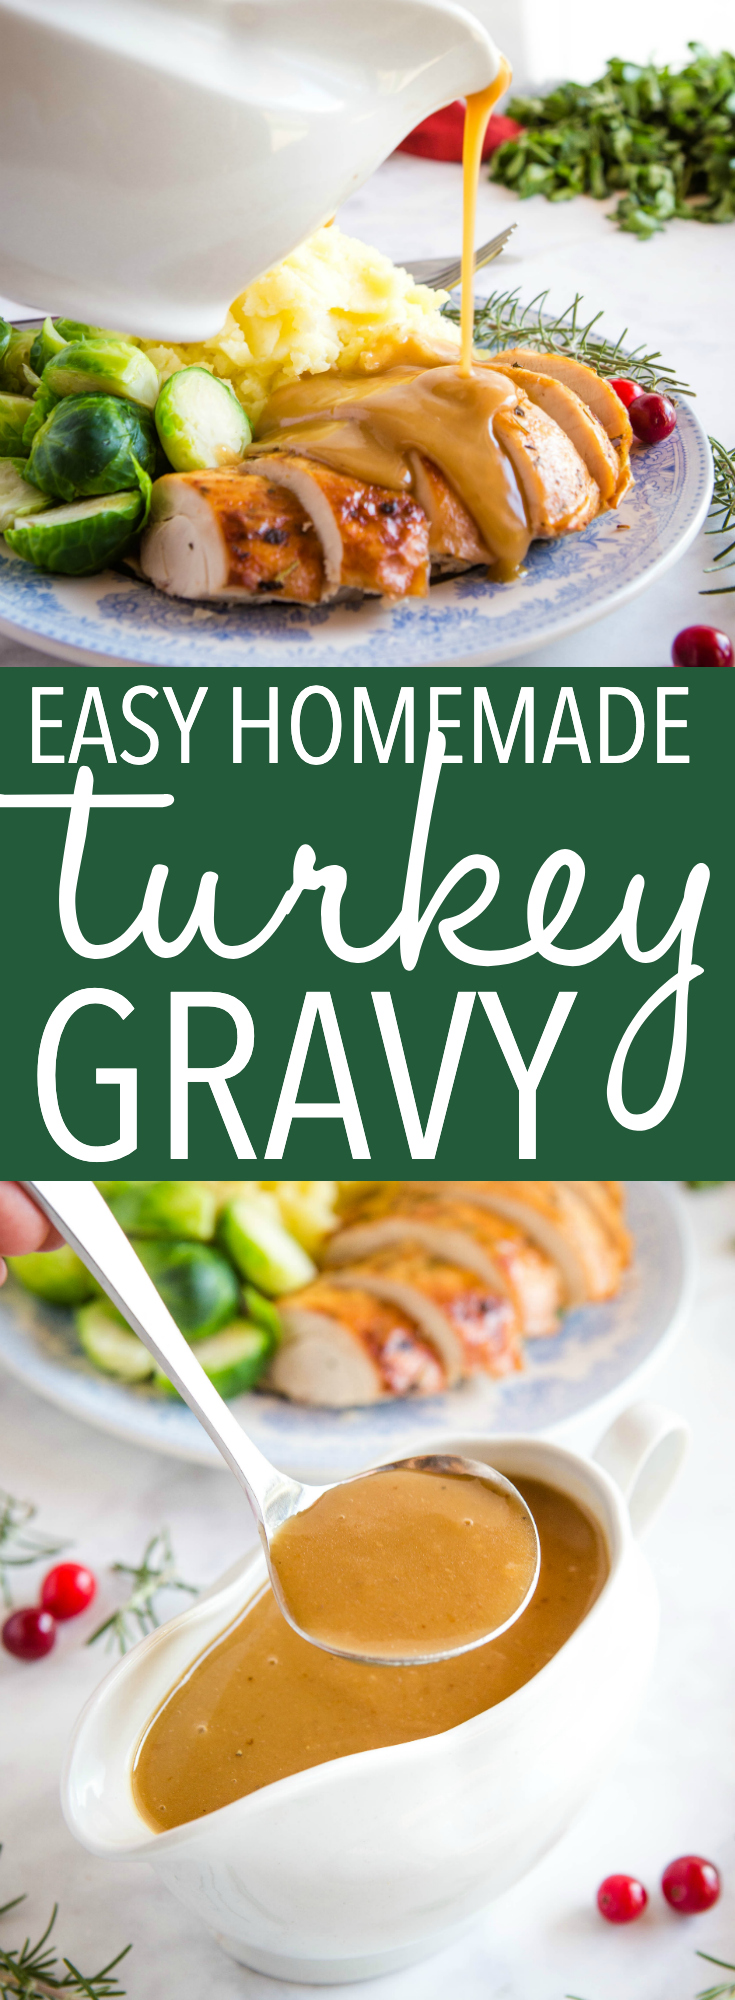 Easy Homemade Roast Turkey Gravy Pinterest